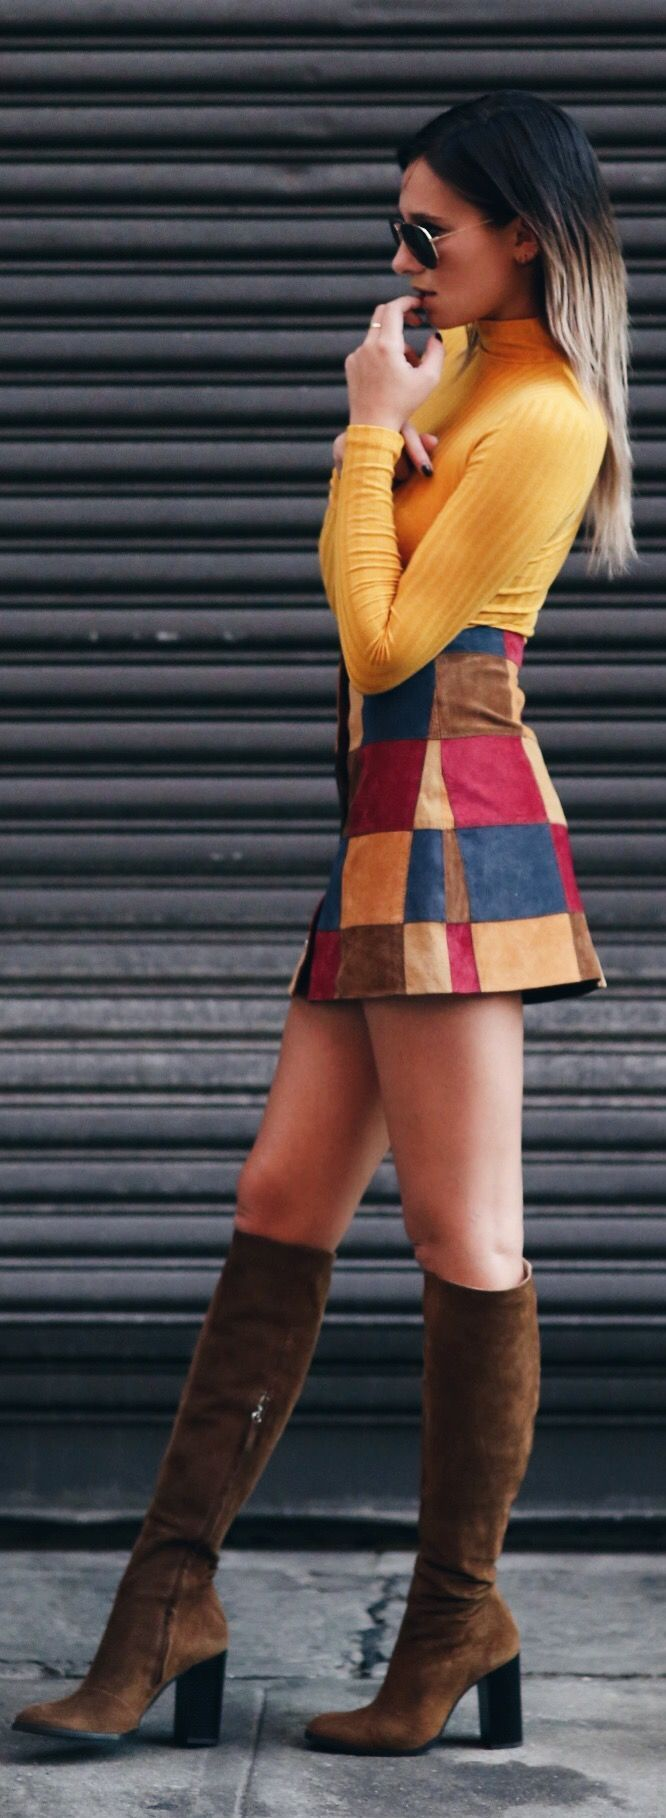 I have fantastic legs and show them off - these colors aren't my favorite but short structured skirts work great.